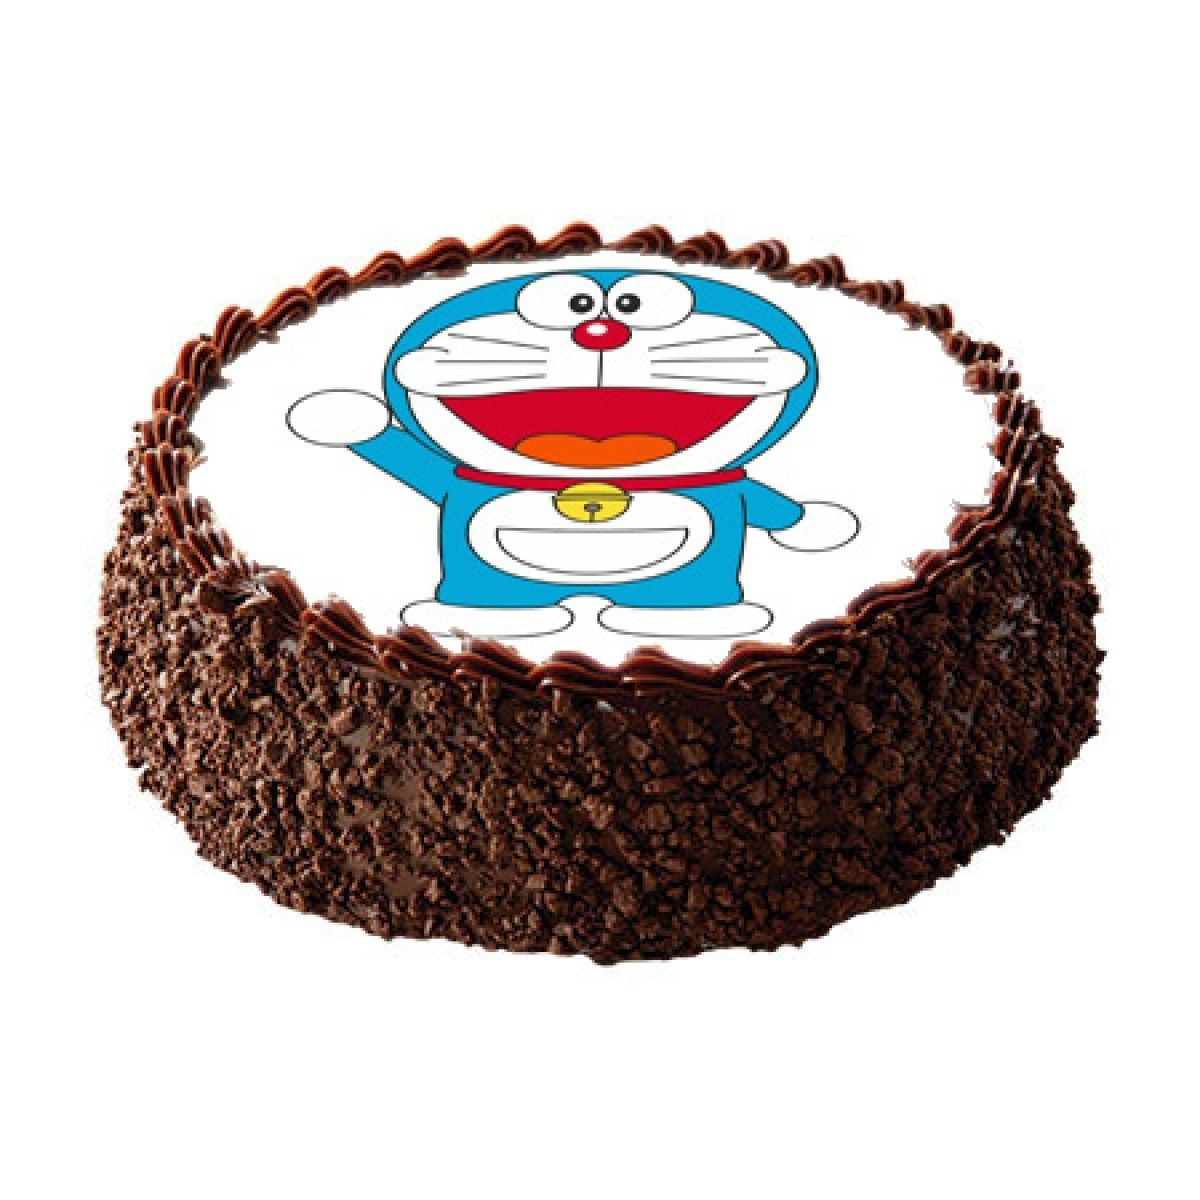 23 Inspiration Picture Of Send A Birthday Cake Order Kids Cakes Online Hyderabad Cartoon Delivery In